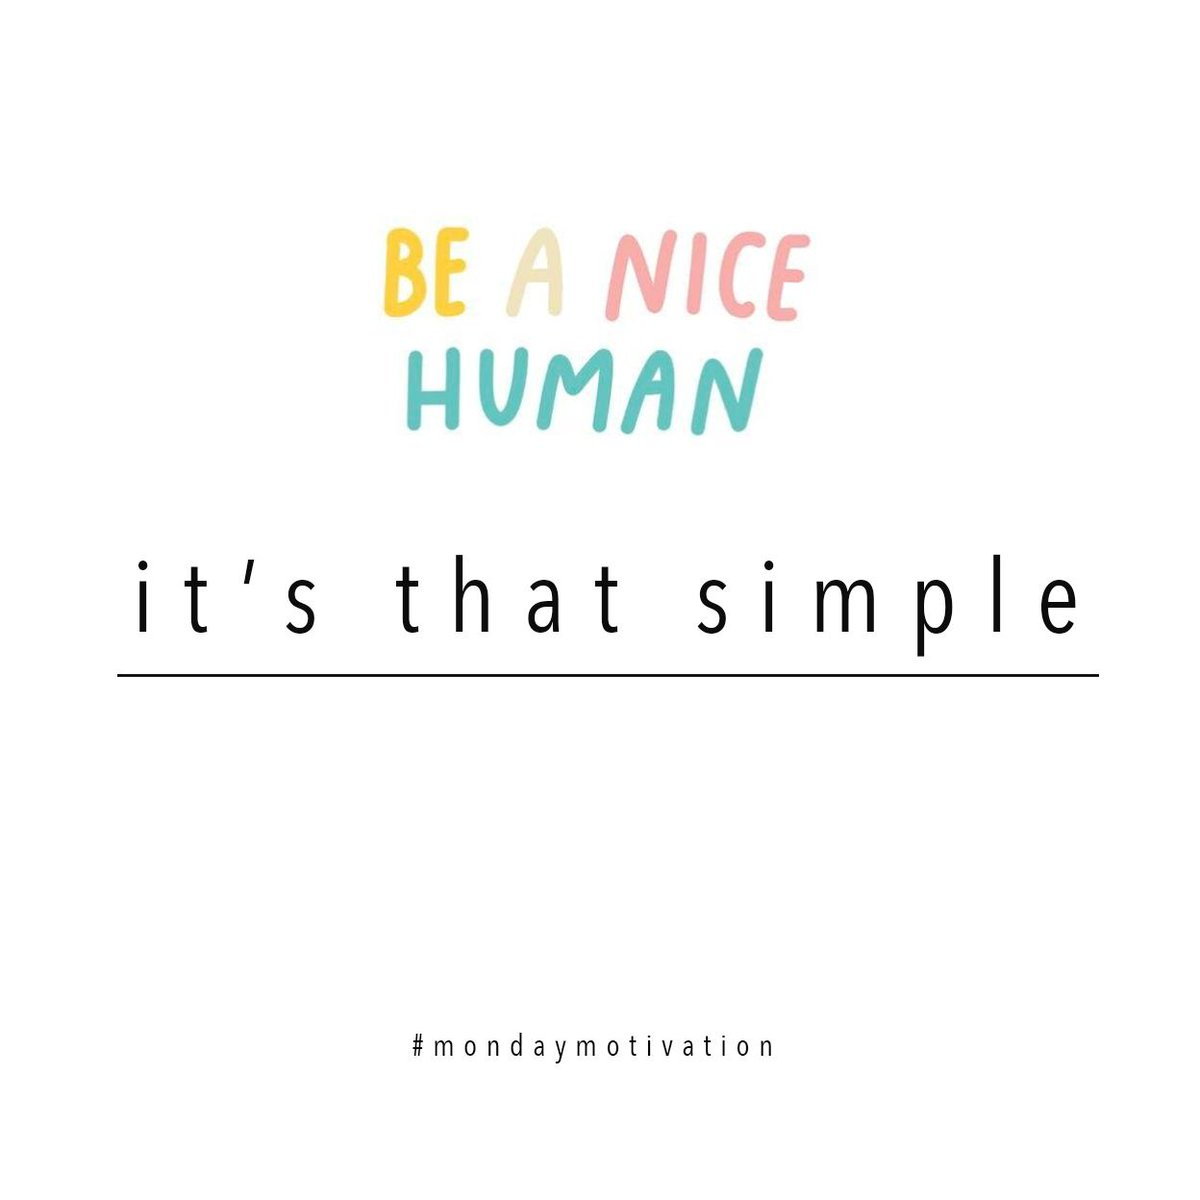 Be a nice human - It's that simple #mondaymotivation  #mondayblues #motivation #inspiration #hustle #grind #life #instalife #instagood #instablog #blog #bloggers #lifestyleblogger #picoftheday #photography #travel #travelphotography #quotes #brands